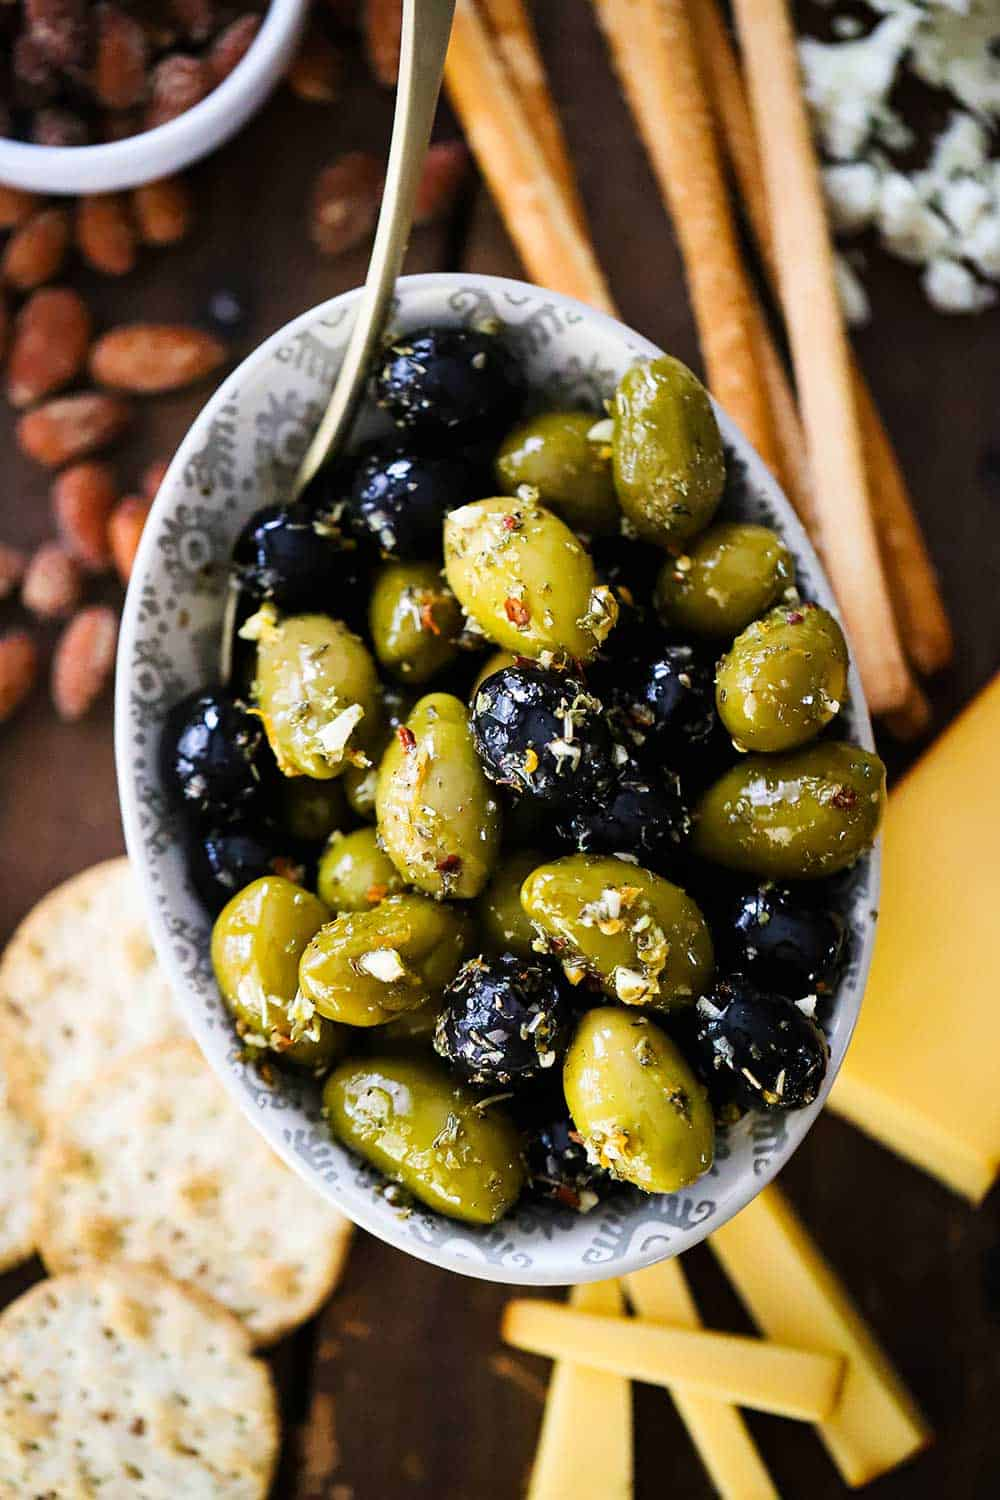 A small oval bowl filled with marinated olives surrounded by cheese slices, crackers, bread sticks, and almonds.